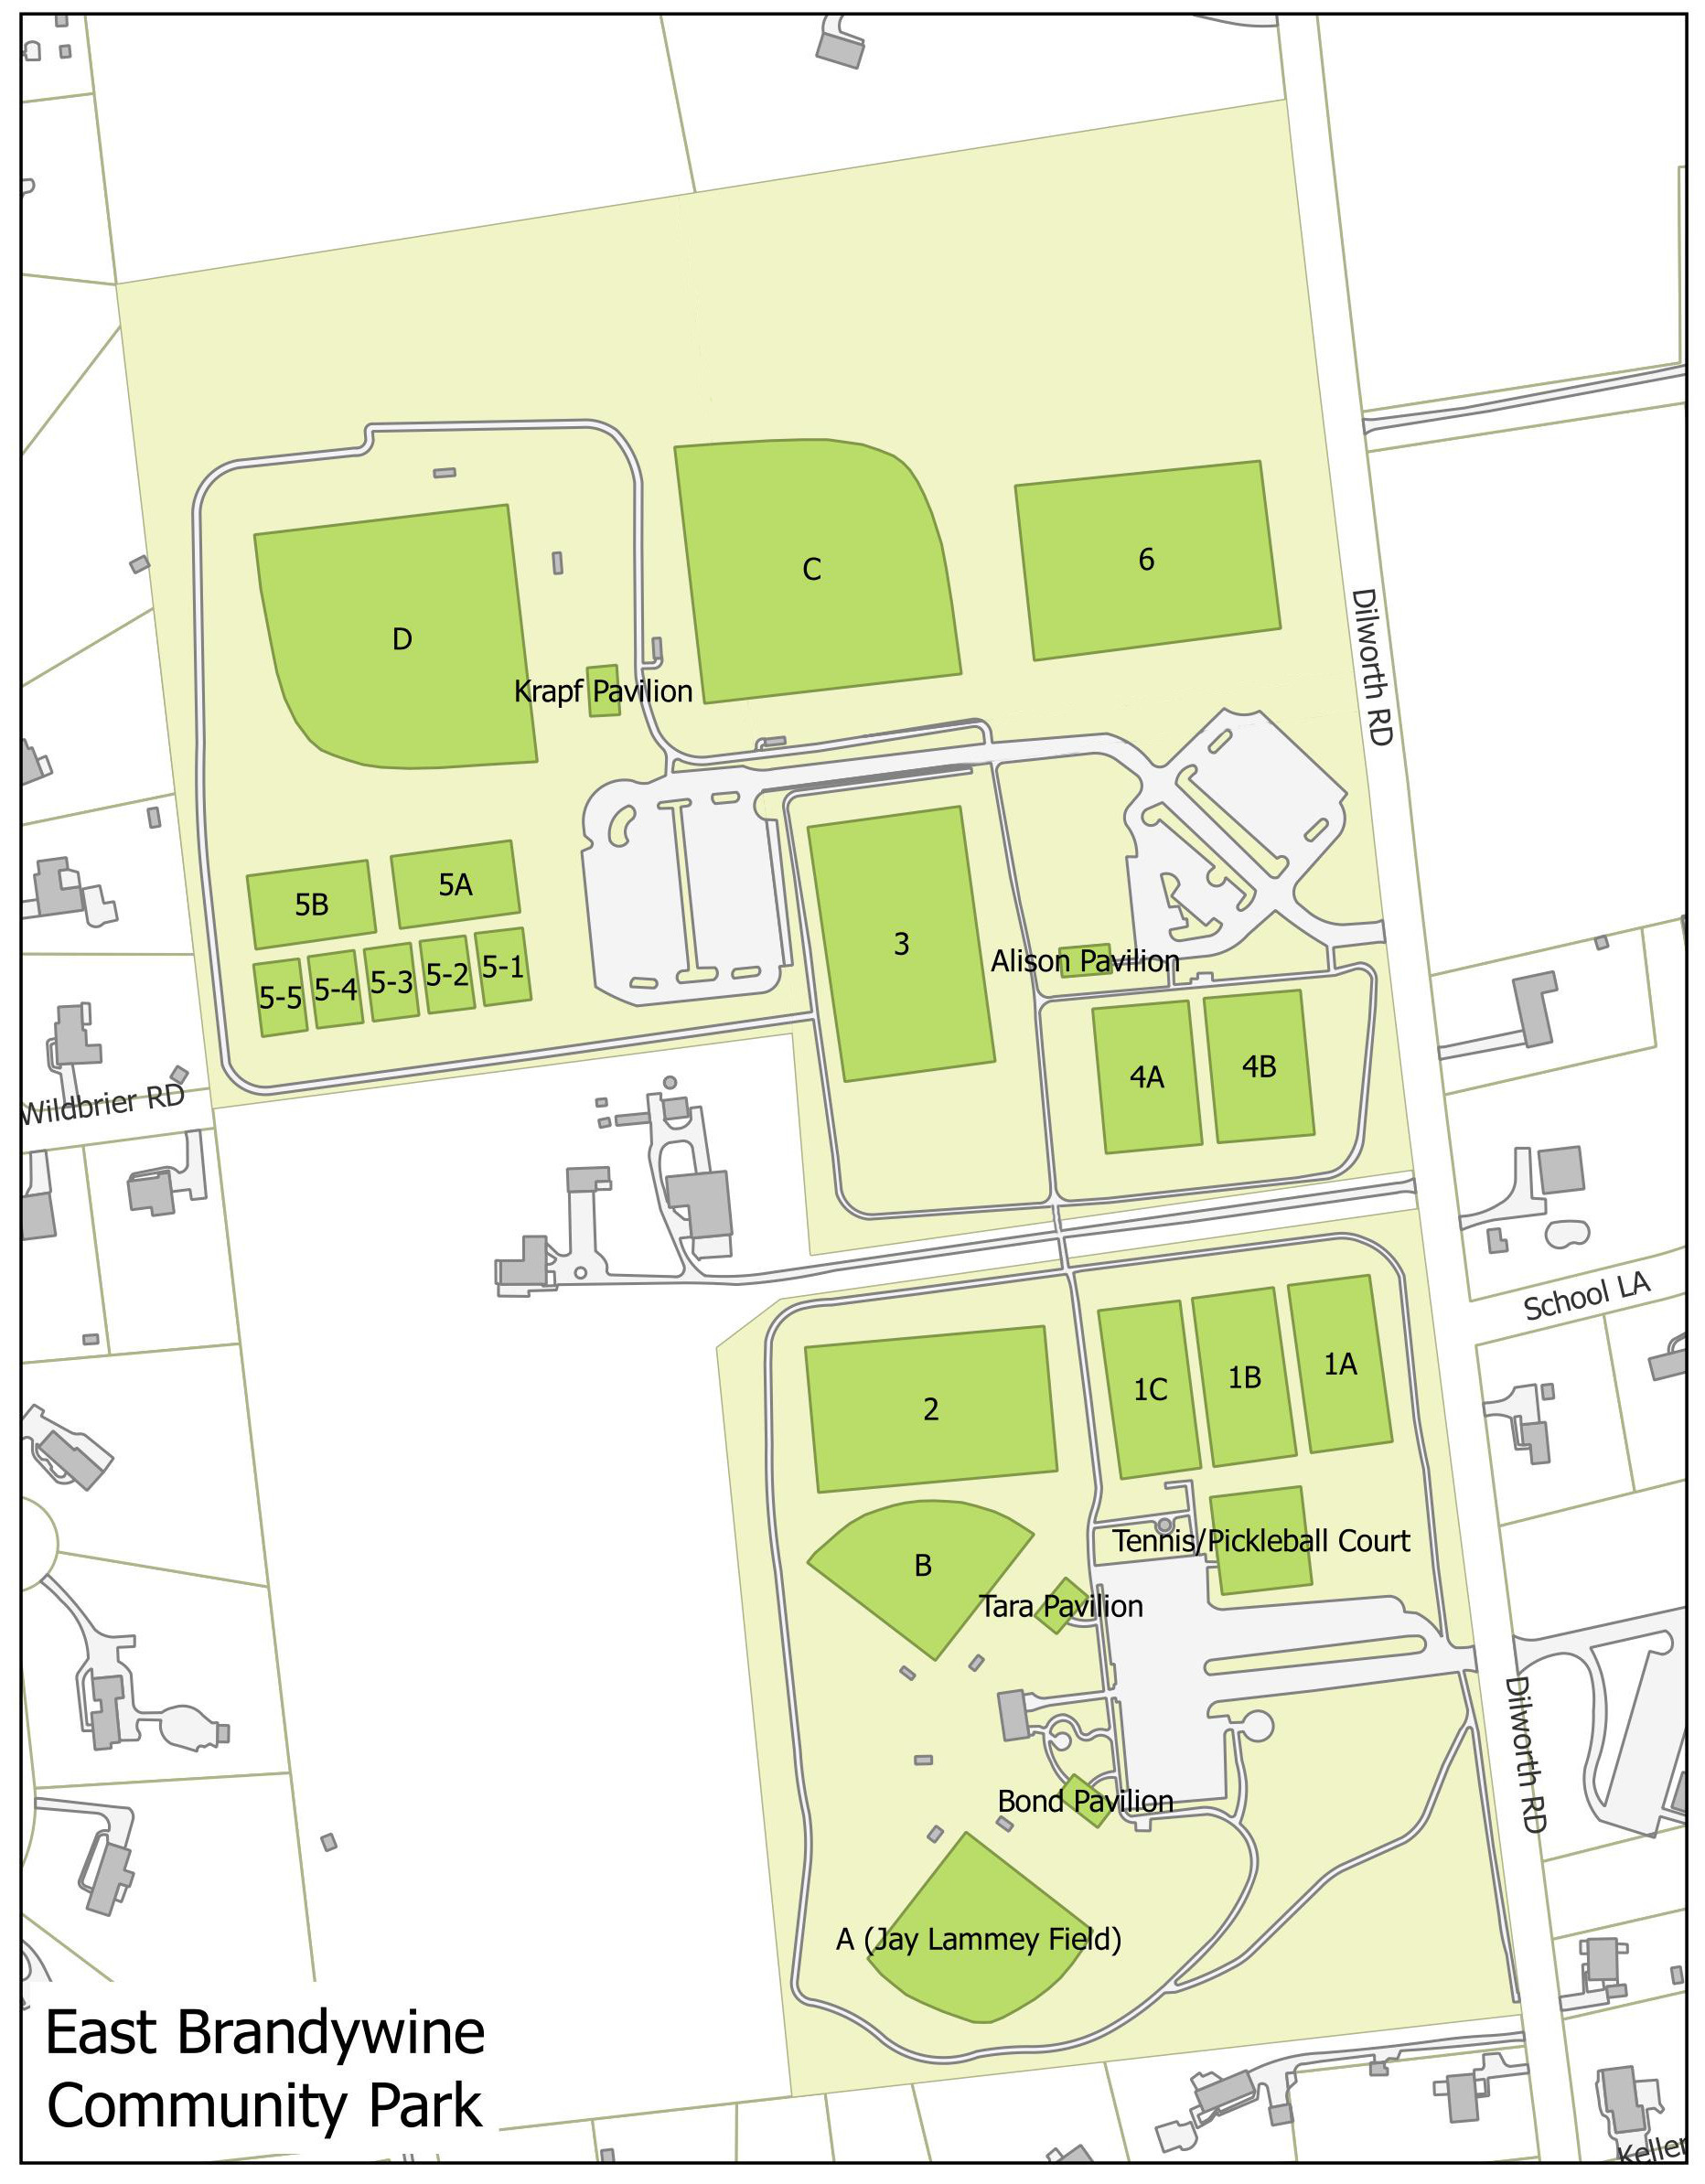 20150630 Facilities Map (EBCP-All)